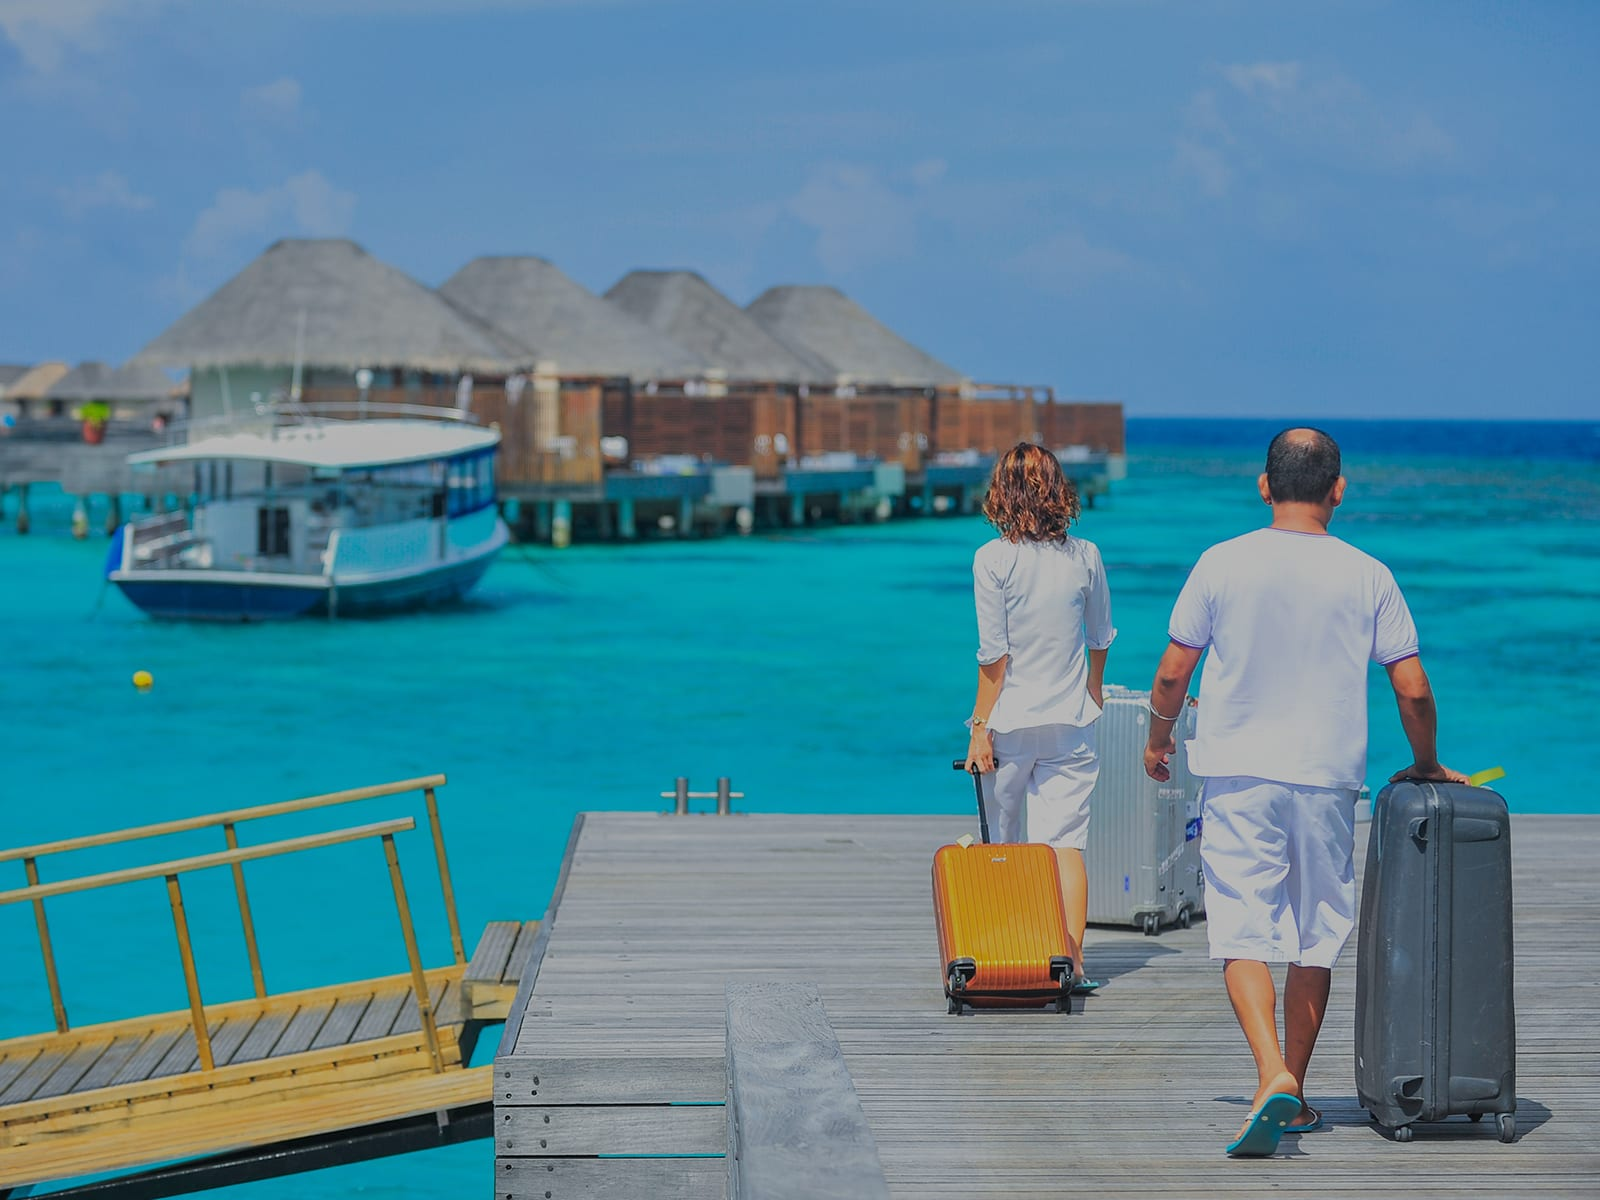 Two vacationers walking on a pier with luggage during travel